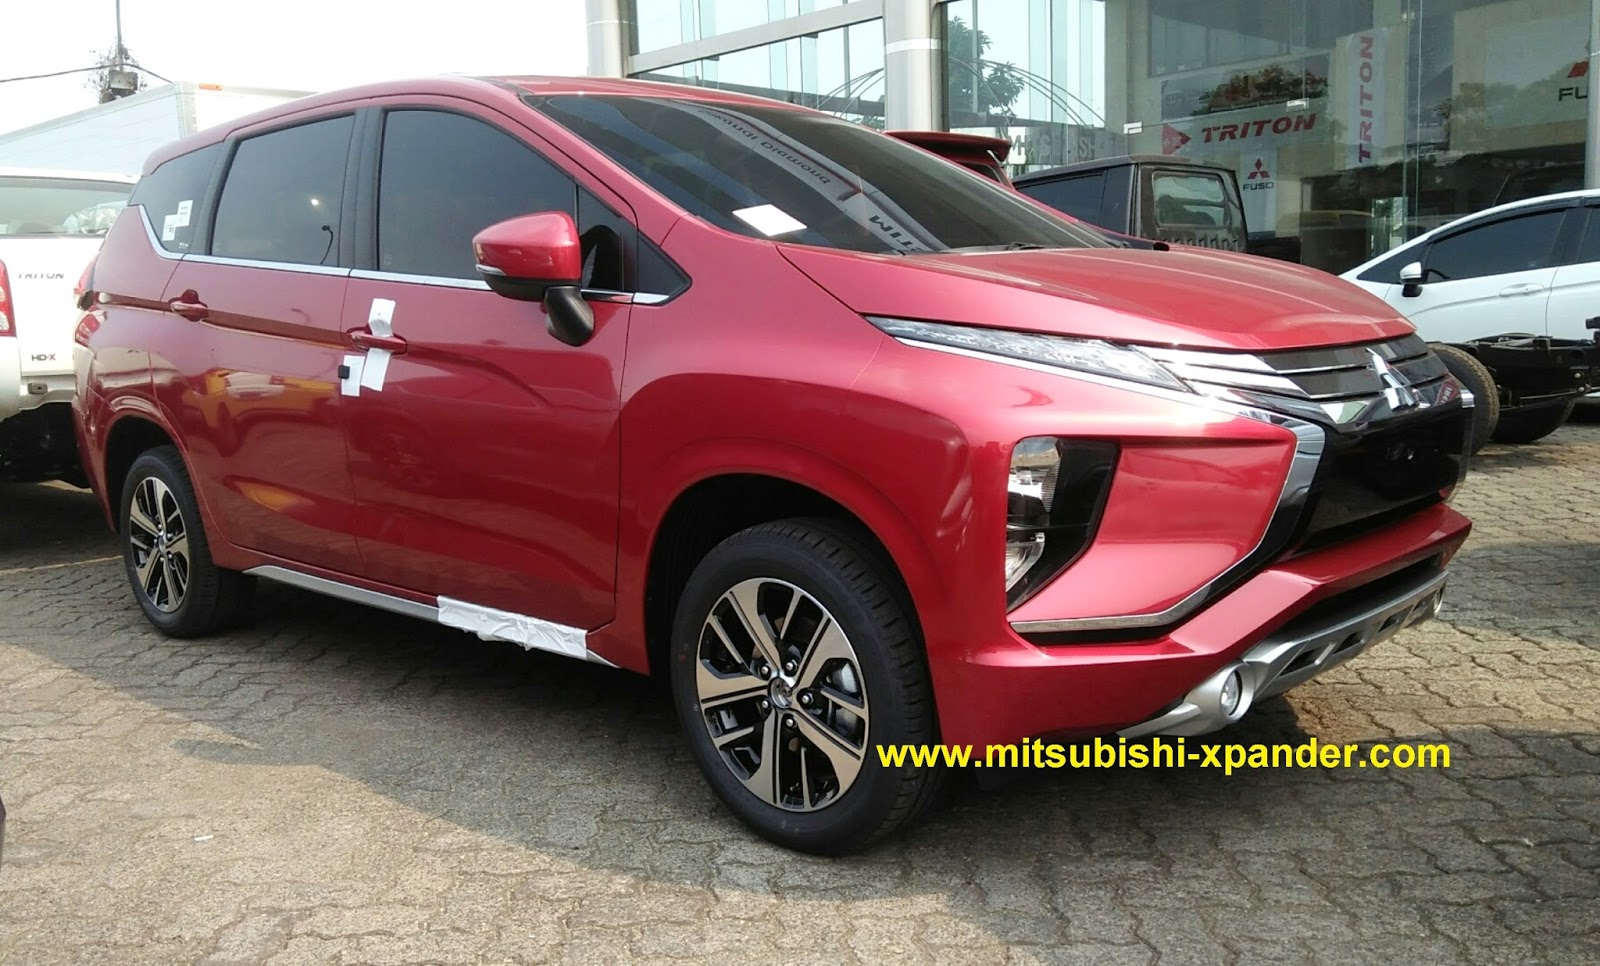 2018 mitsubishi expander sport with Mitsubishi Xpander on Mitsubishi xpander int 26 moreover Kredit Mitsubishi Expander Promo moreover First Drive 2017 Chevy Corvette Grand Sport as well Get Gopro Reserve New Mitsubishi Xpander as well Telepon Nomor Kaya Jogja.